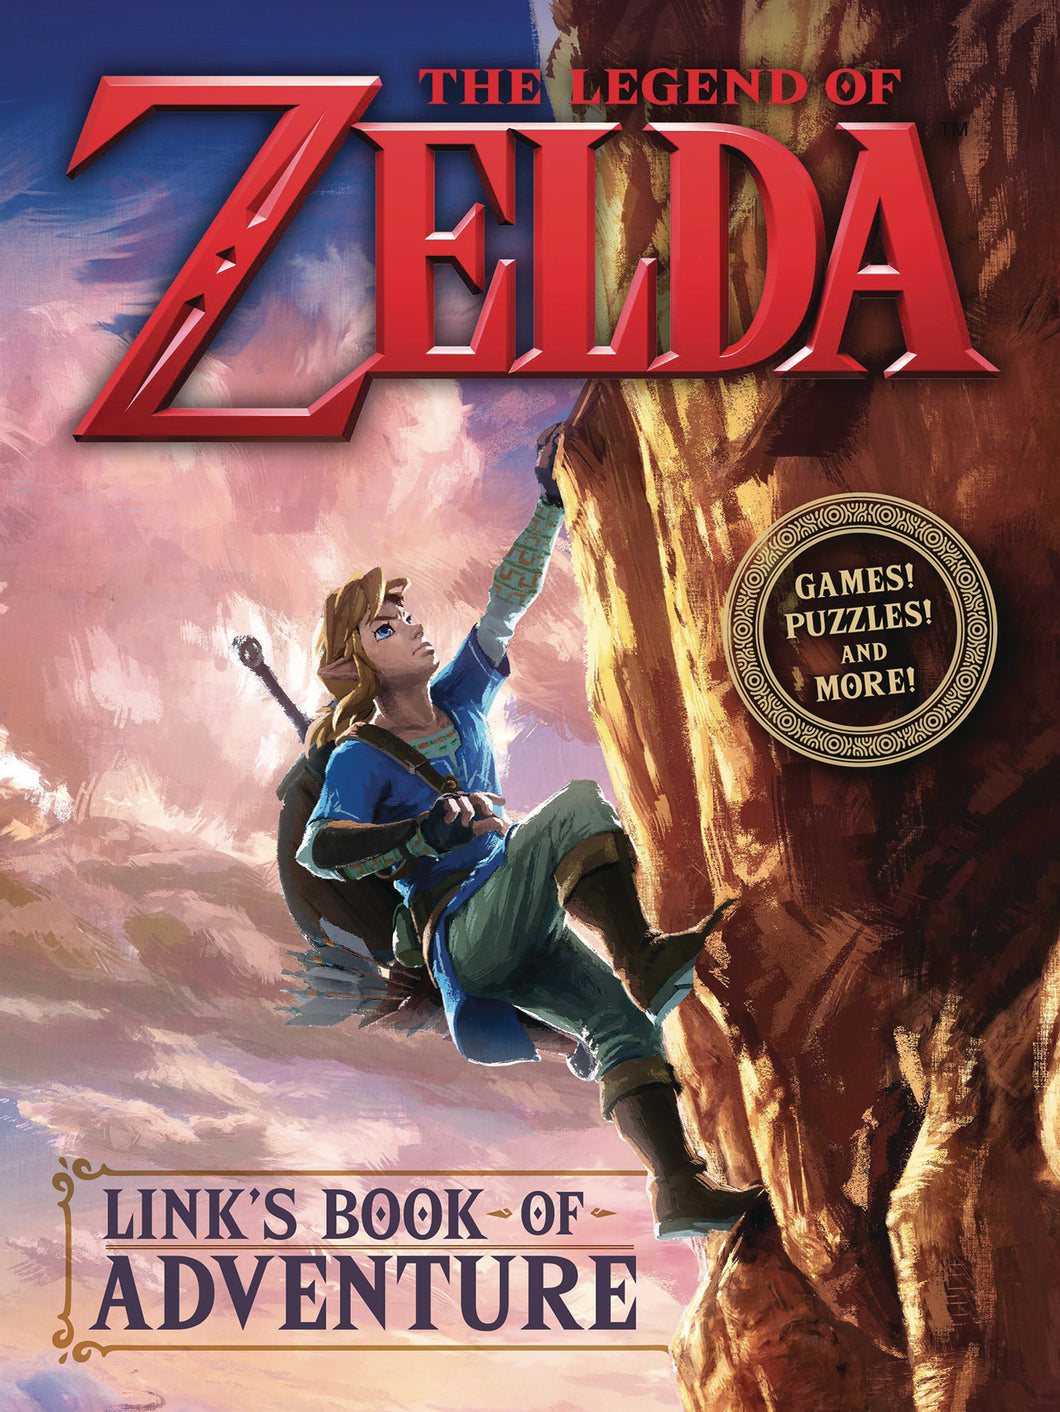 LEGEND OF ZELDA LINKS BOOK OF ADV (C: 1-1-0) - 2 Geeks Comics